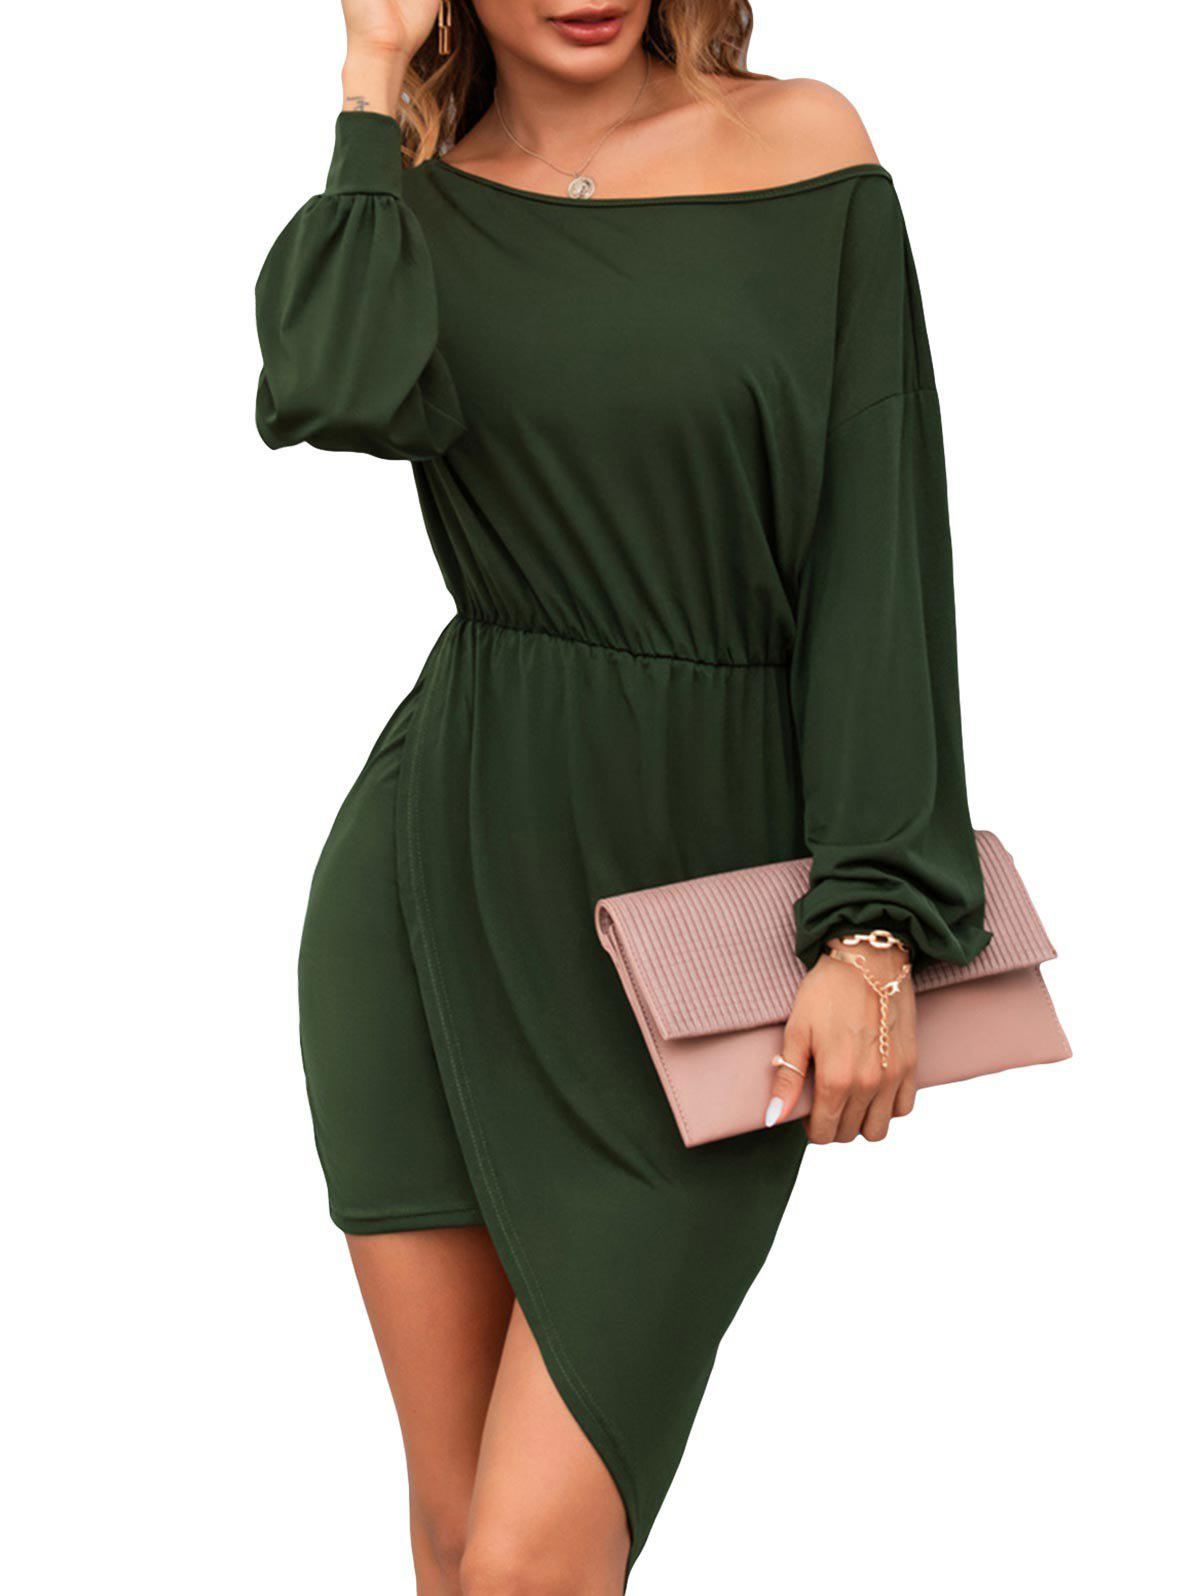 Skew Collar Long Sleeve Asymmetrical Dress - DEEP GREEN M